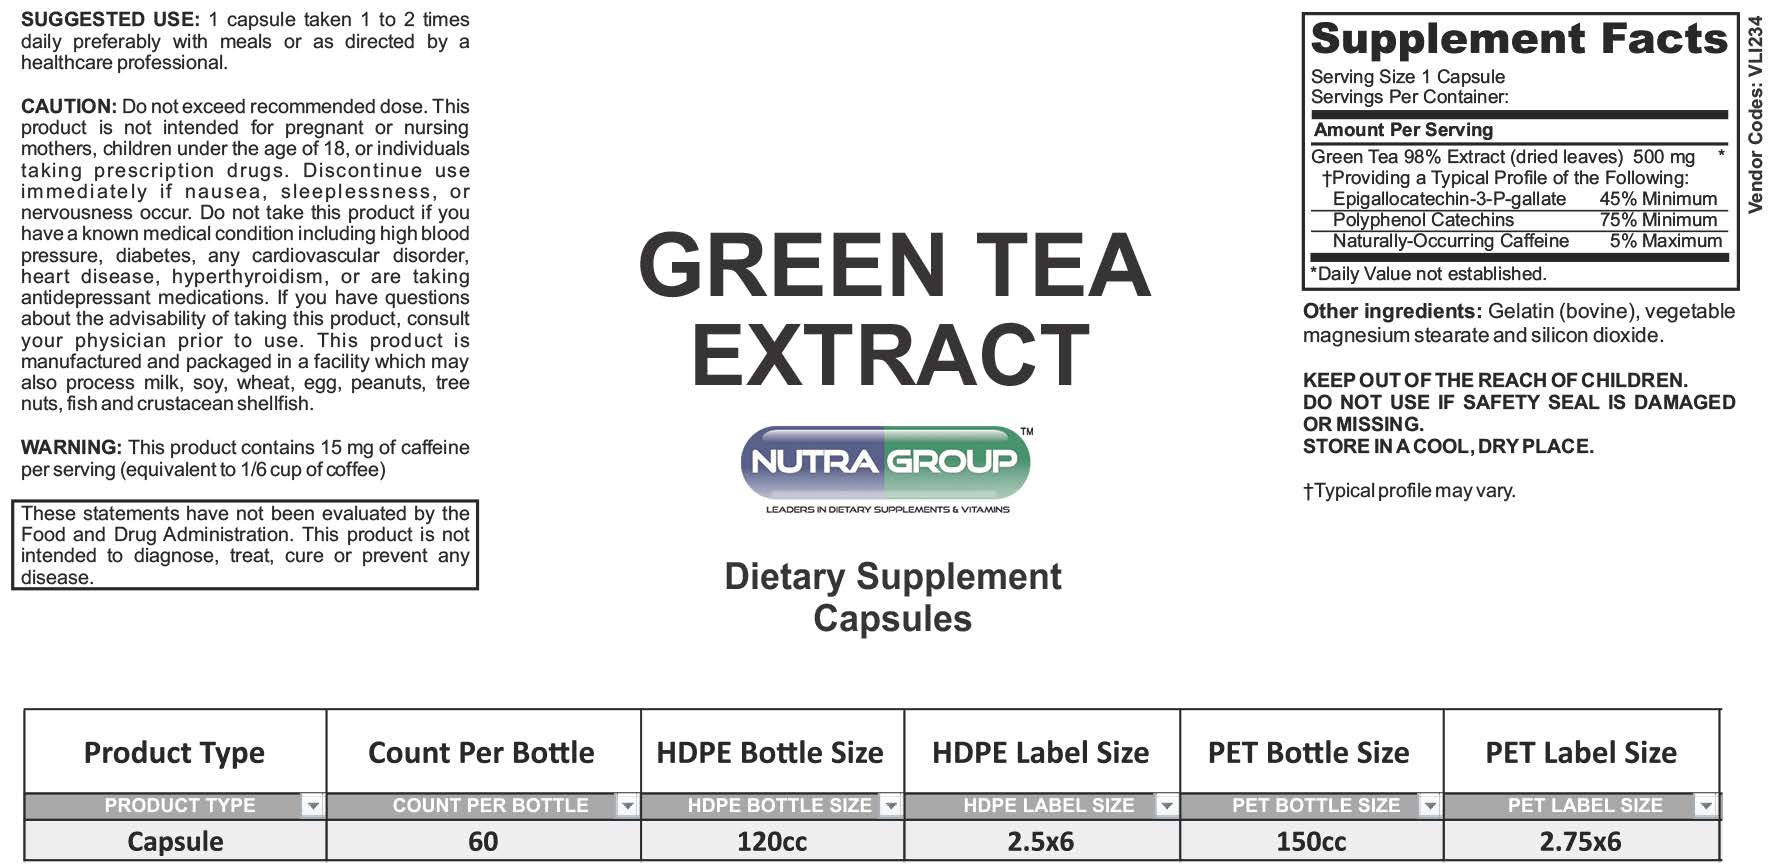 Private label Green Tea supplements